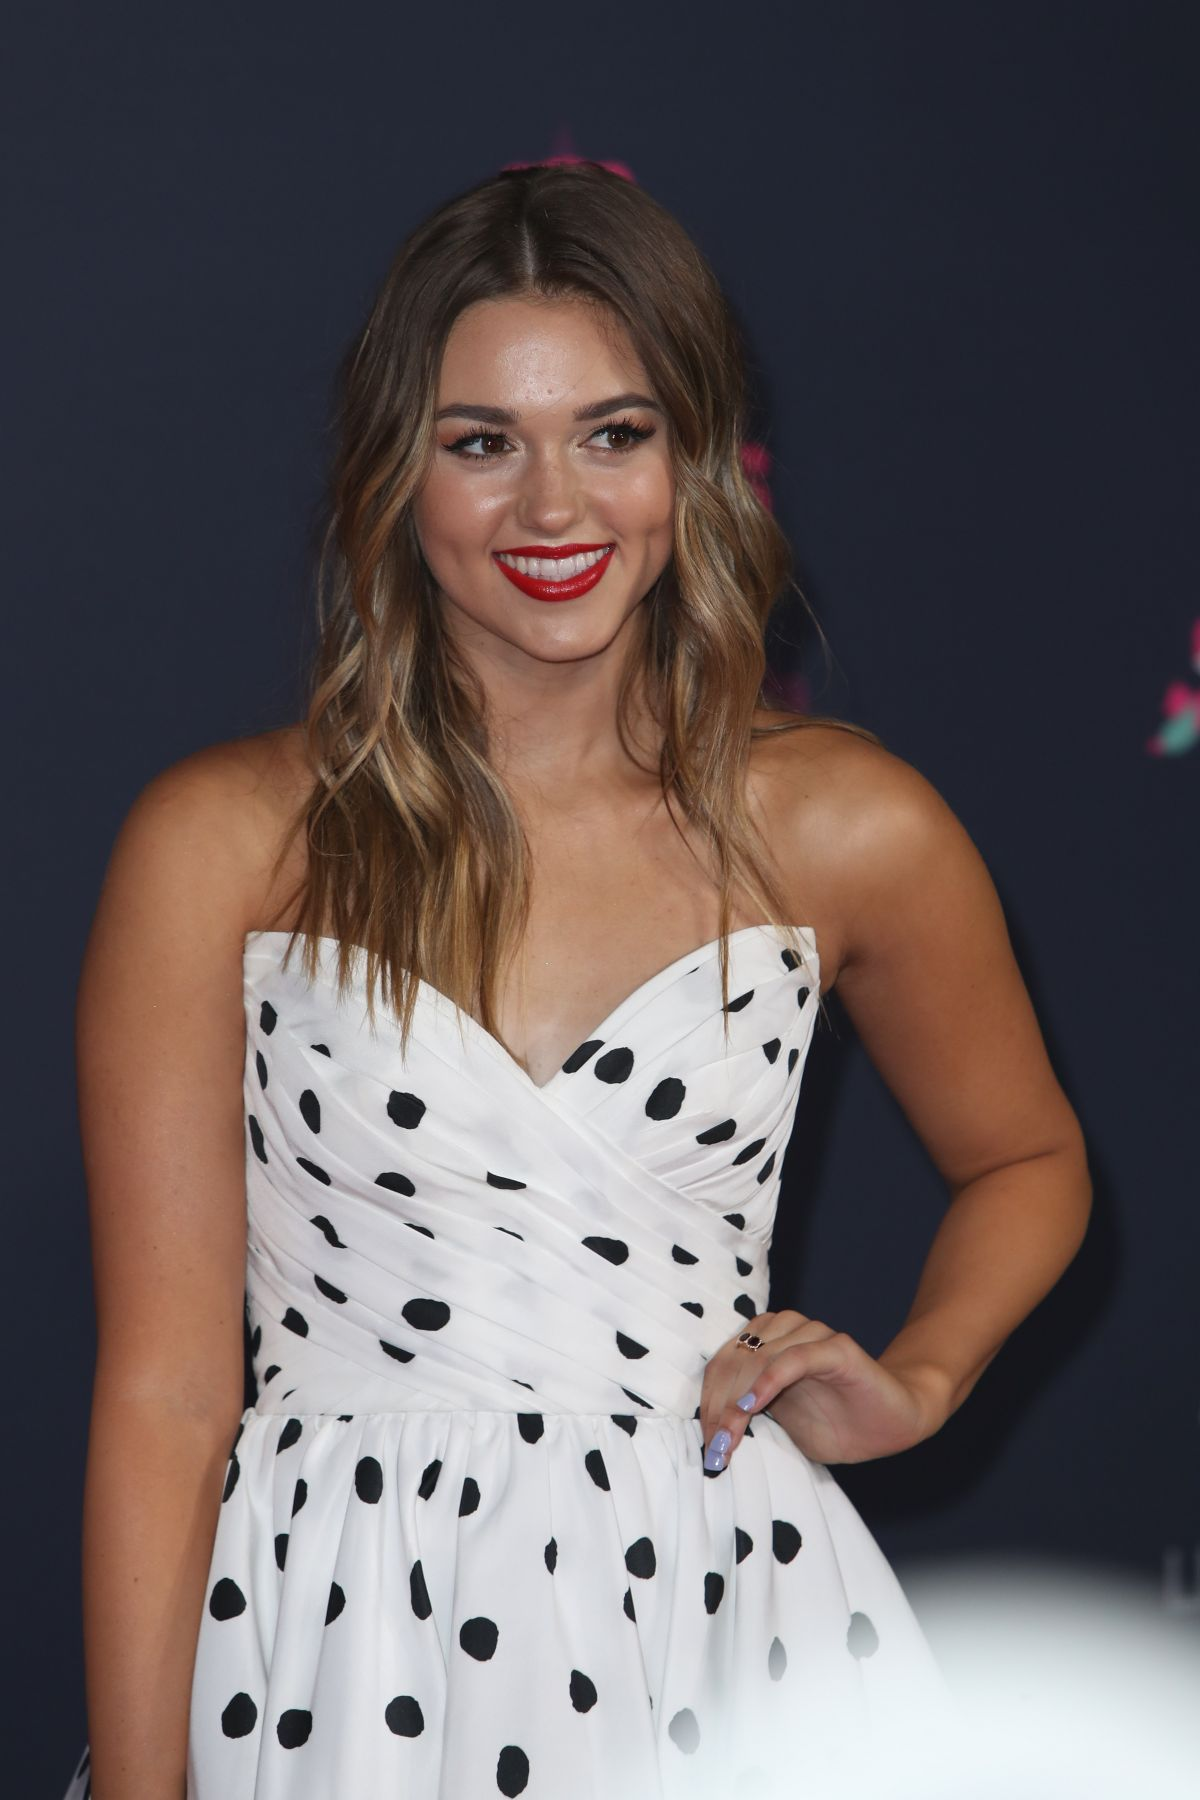 SADIE ROBERTSON at 2016 CMT Music Awards in Nashville 06/08/2016